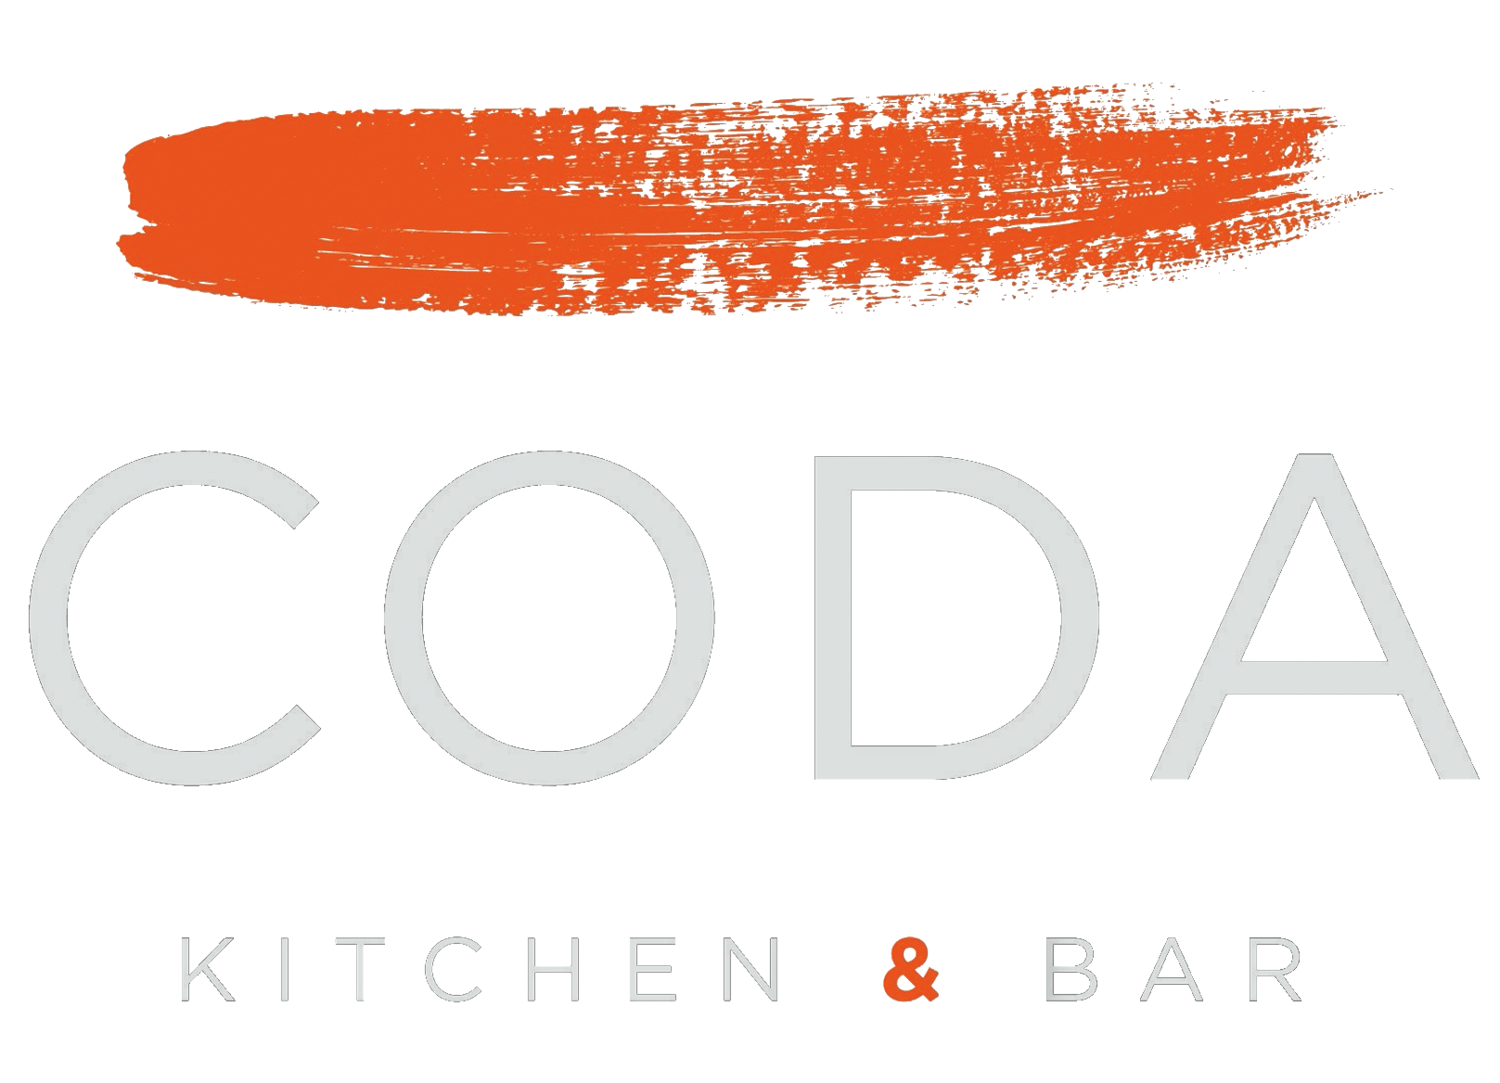 Coda kitchen and bar. Club clipart lady brunch